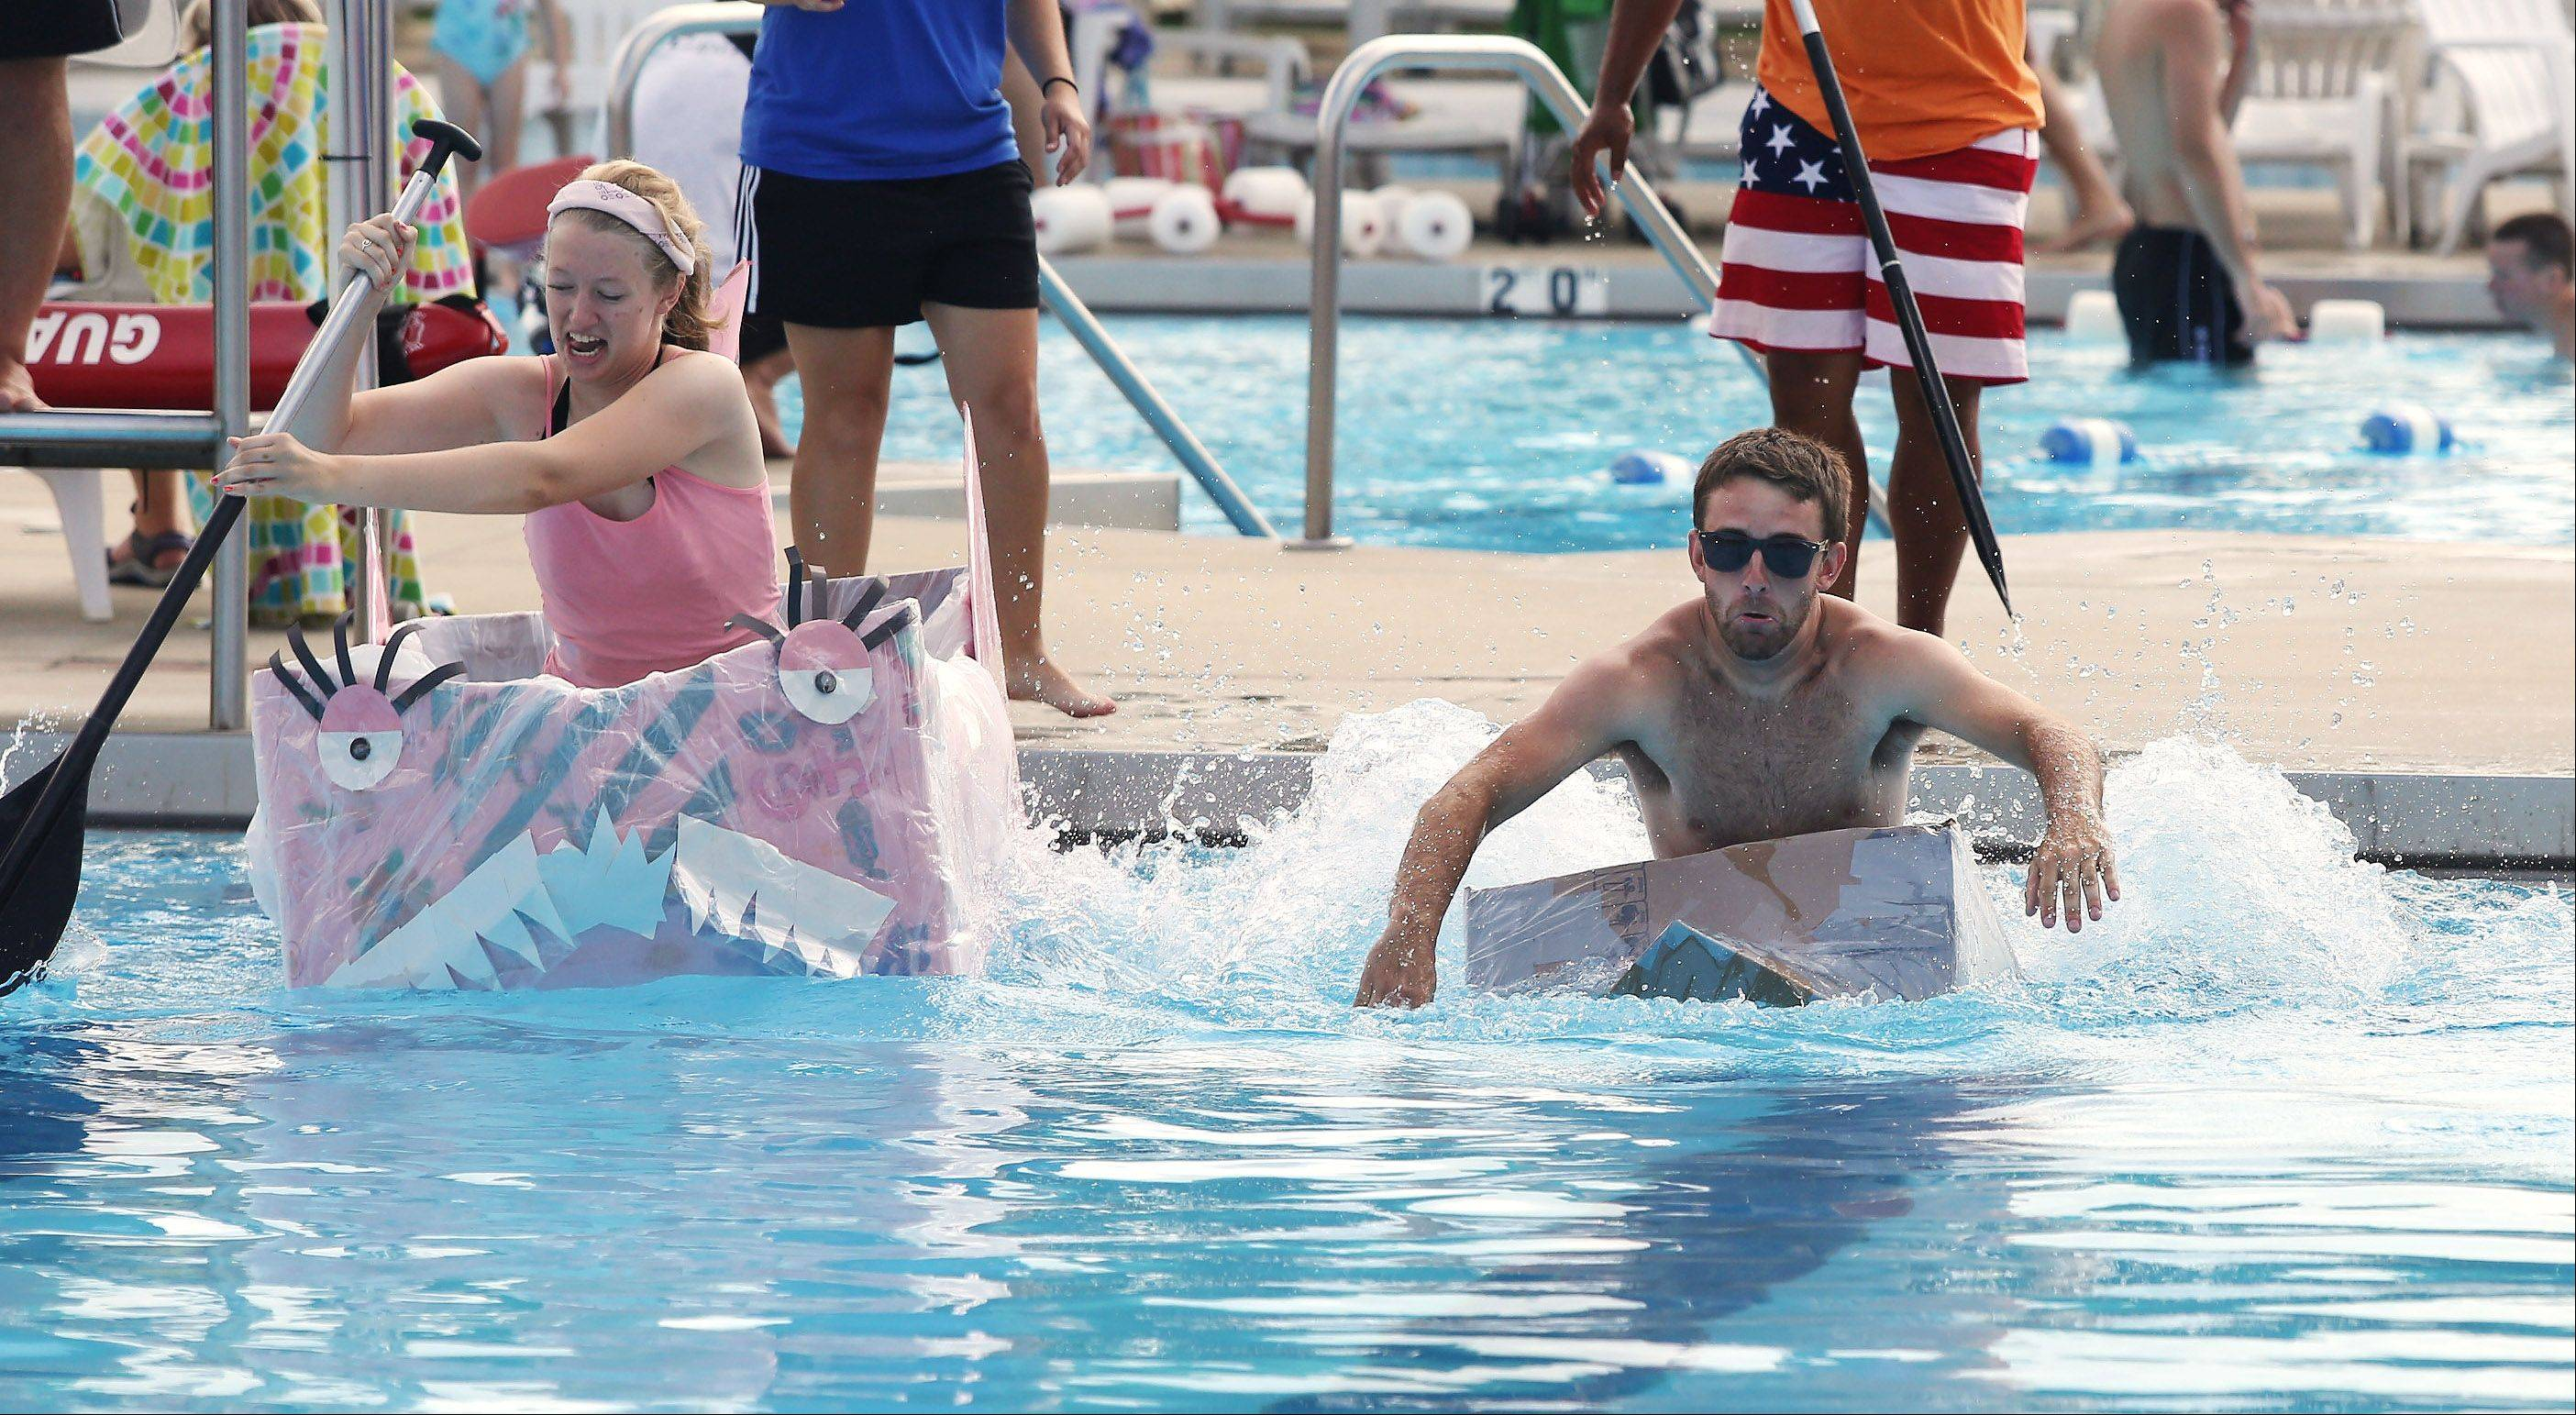 Camp counselor Jamie Vincent goes down with his ship, but Julia Wilson and her pink boat look seaworthy.